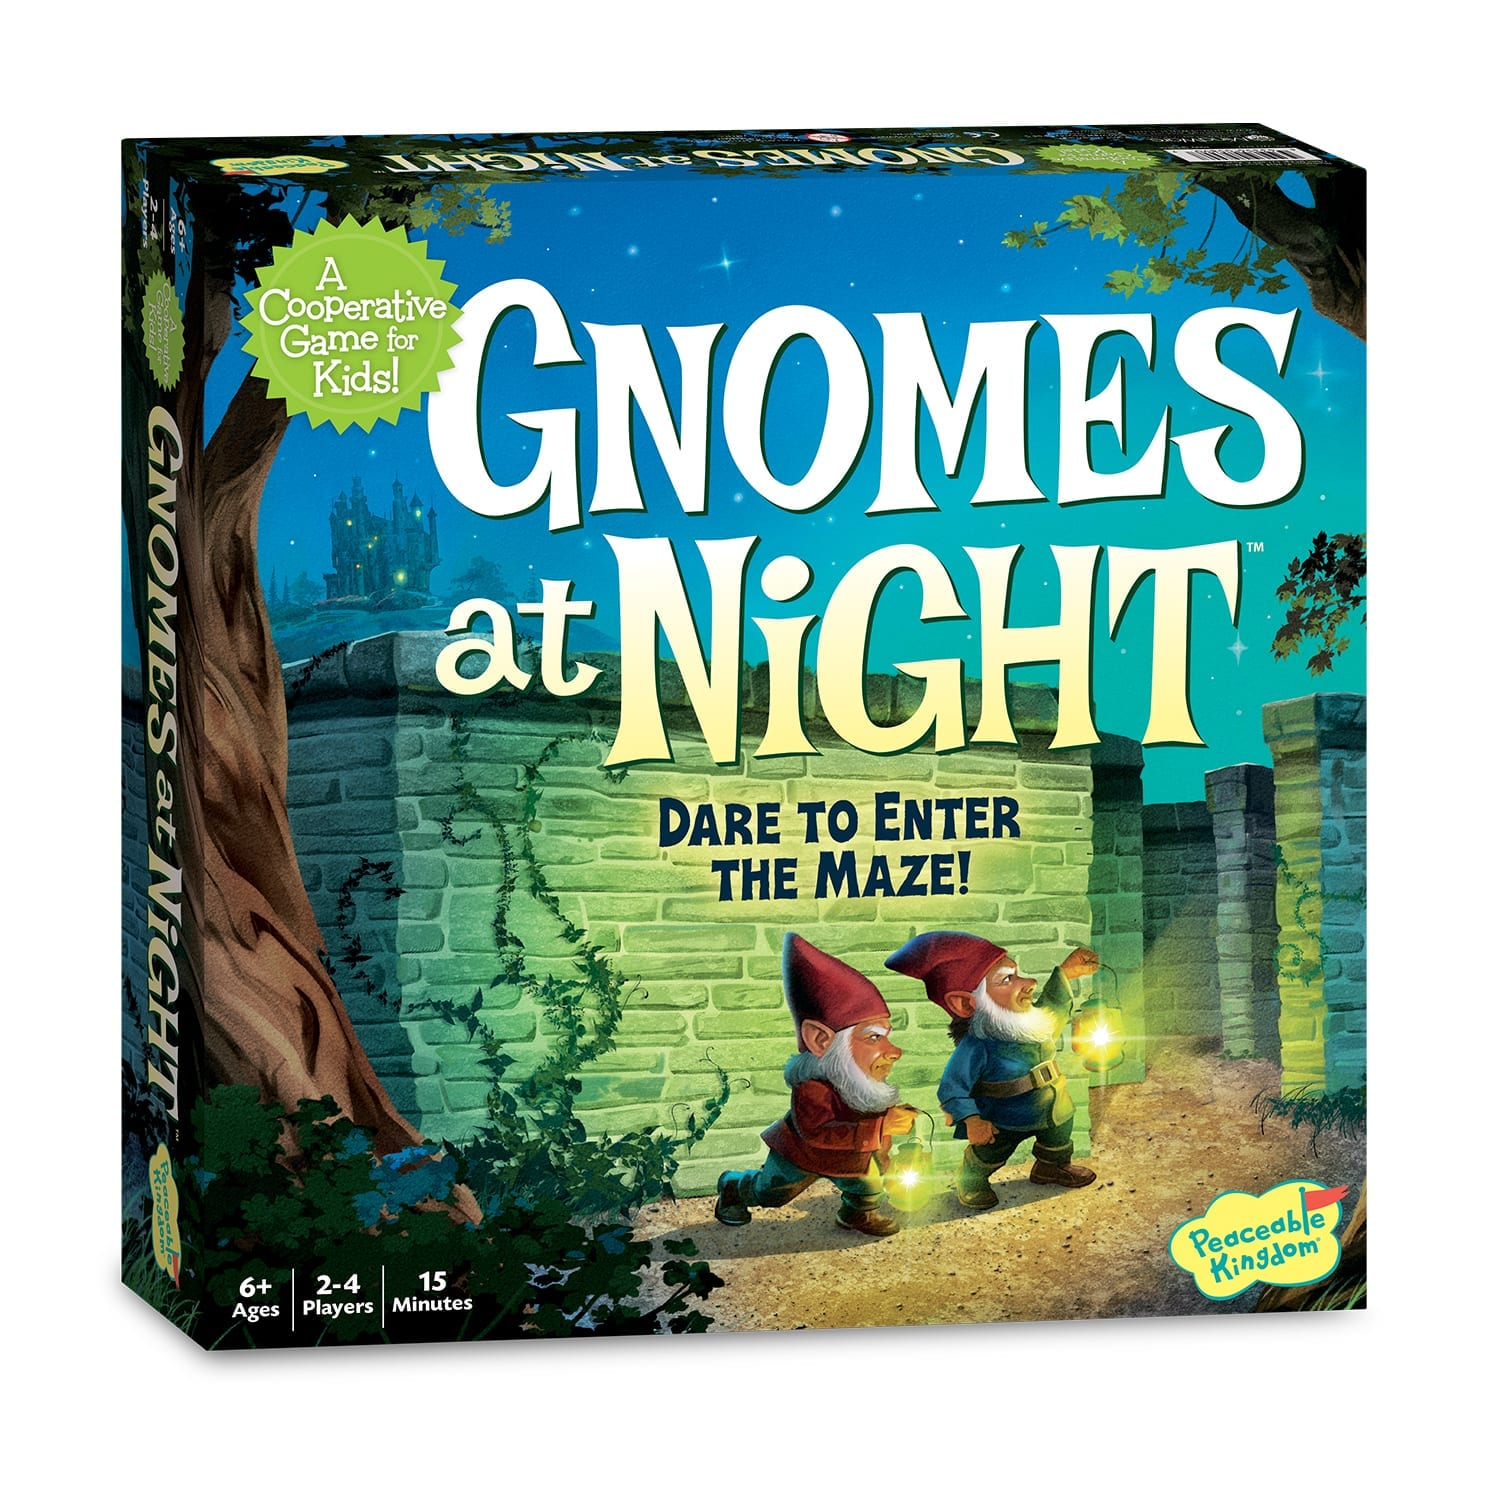 Game Play Under 7 - Gnomes at Night (2 of 3)